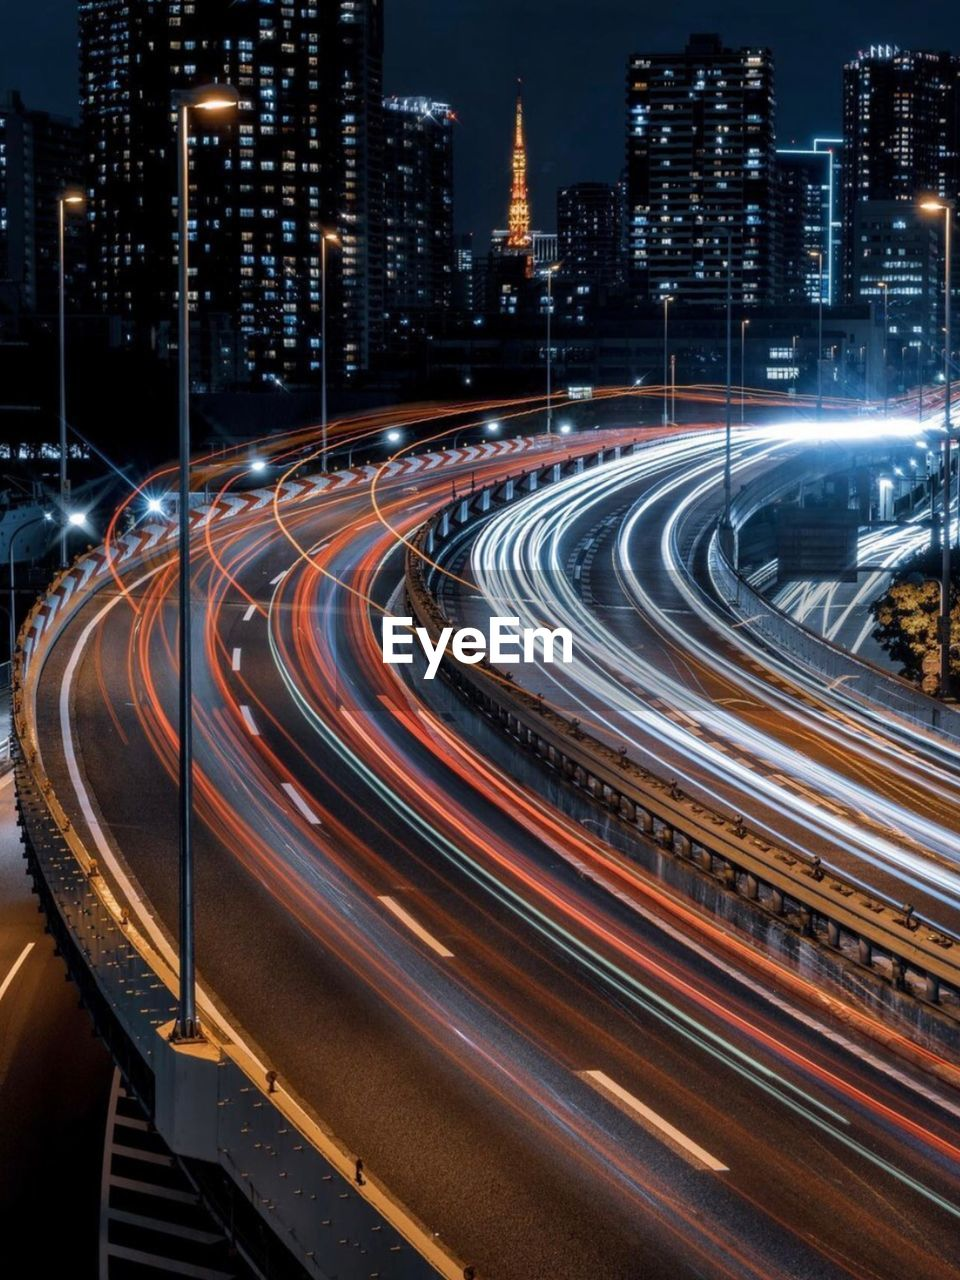 High angle view of light trails on road amidst buildings at night